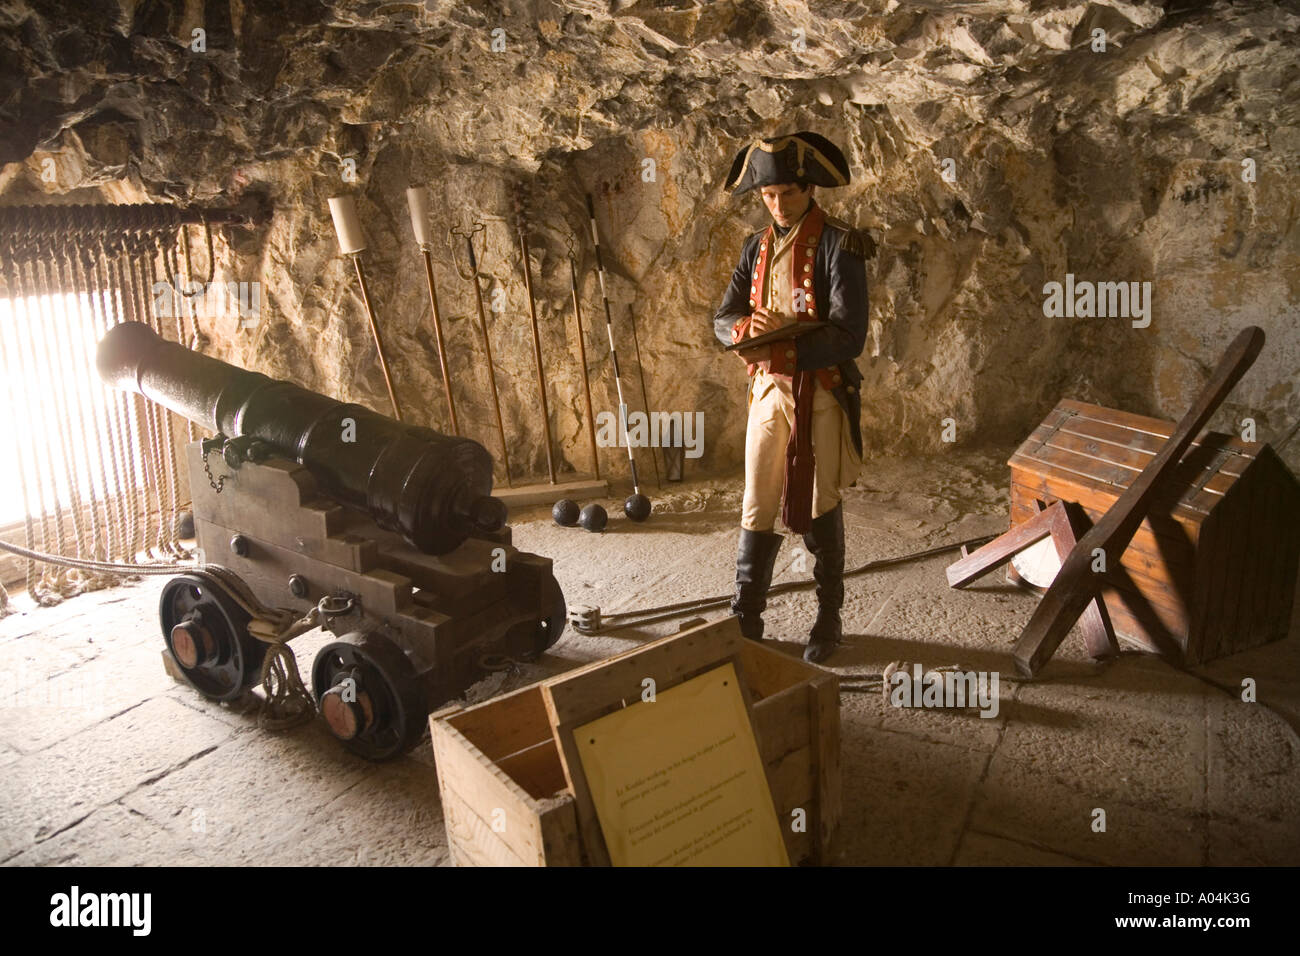 Gibraltar The Great Siege Tunnel Waxwork display of officer taking notes at gun embrasure - Stock Image